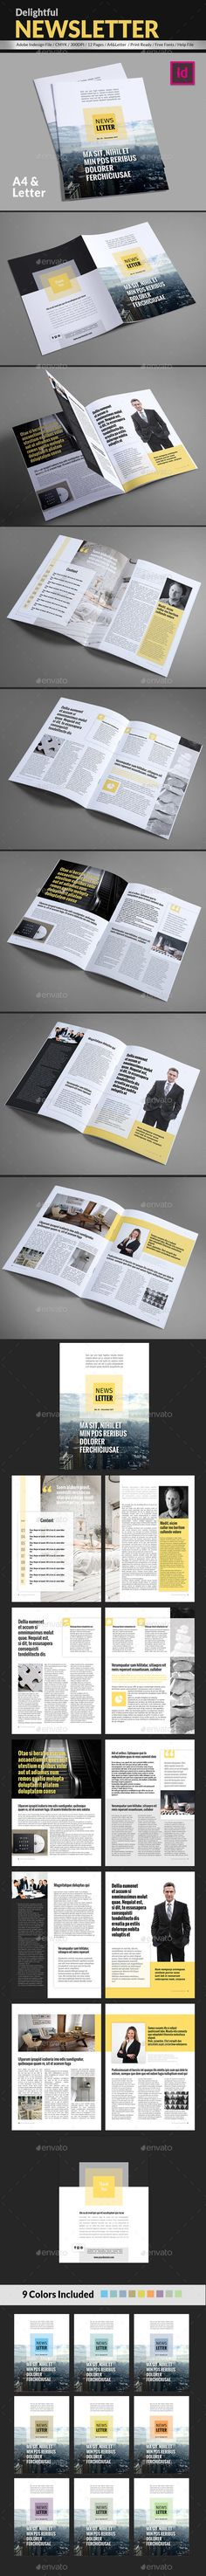 Delightful Newsletter Template - #Newsletters #Print #Templates Download here: https://graphicriver.net/item/delightful-newsletter-template/18215055?ref=alena994